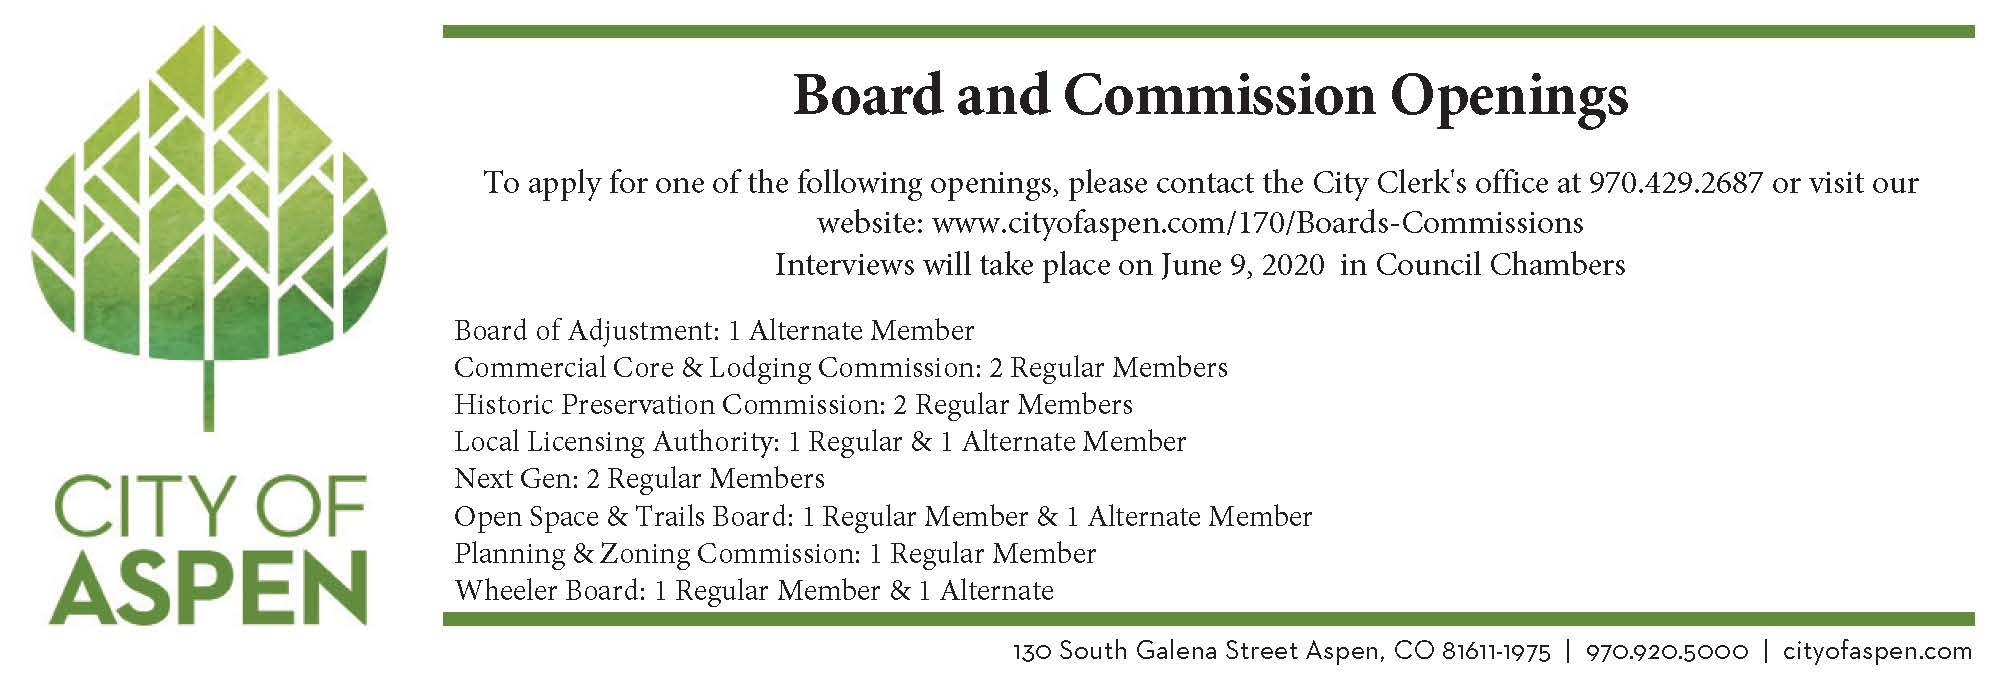 Board and Commission openings (3)_Page_1